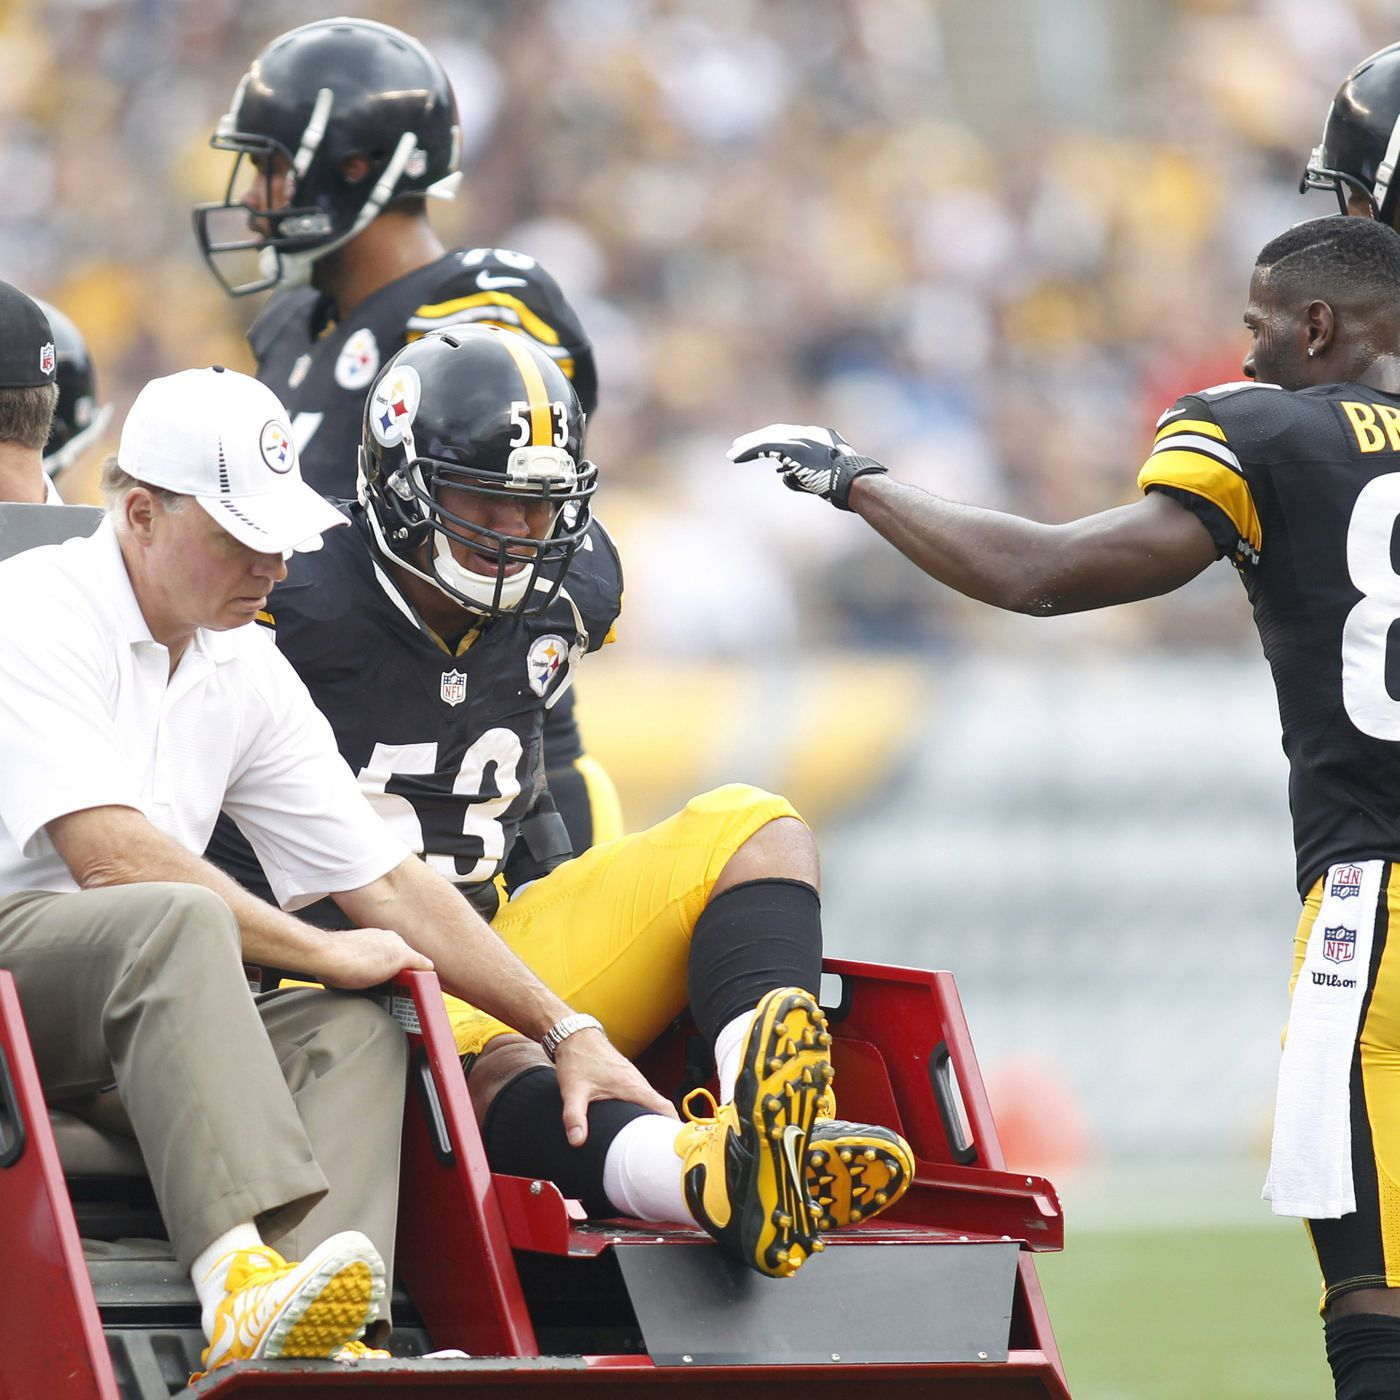 99ddb7a1794 Why all the injuries in the NFL? - Behind the Steel Curtain